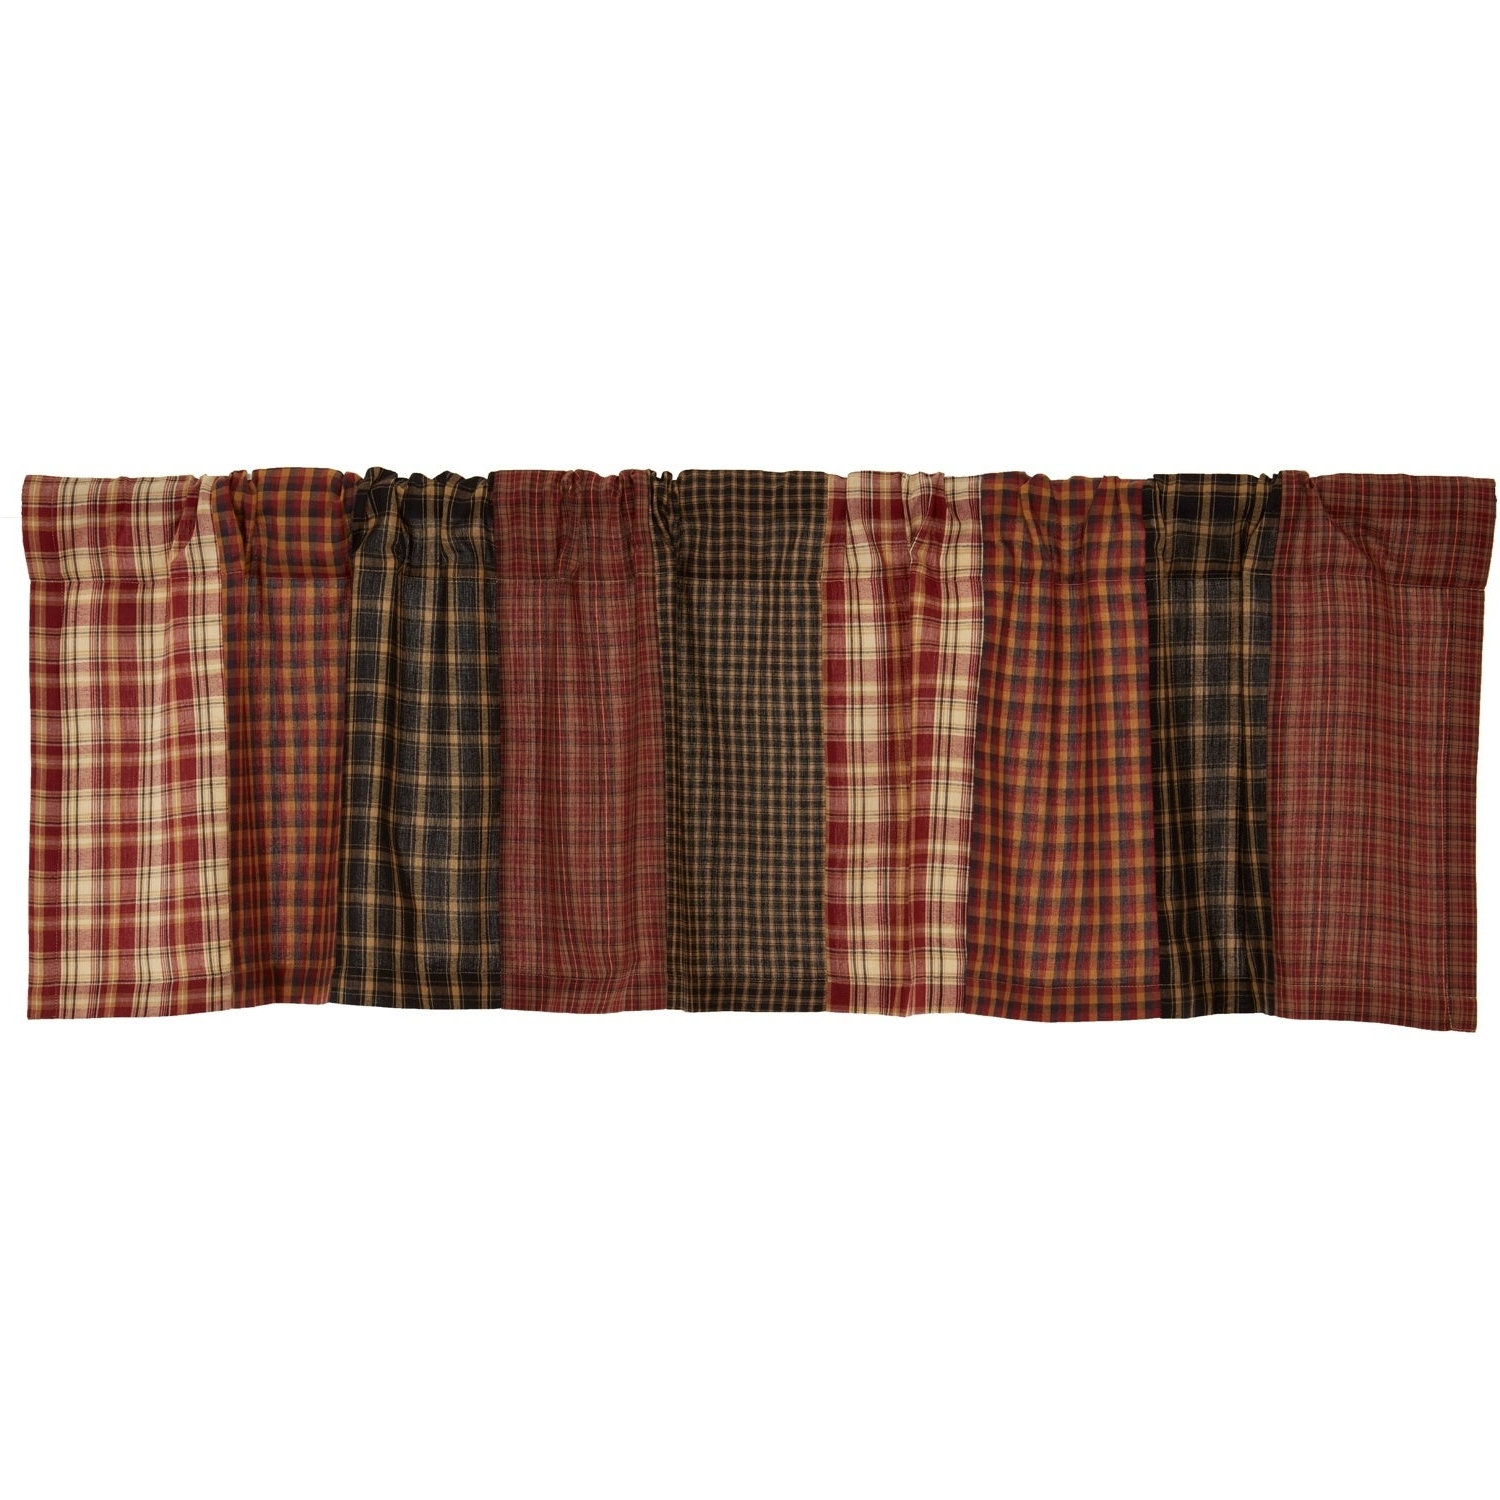 Most Current Red Rustic Kitchen Curtains Intended For Red Rustic Kitchen Curtains Vhc Beckham Patchwork Valance Rod Pocket Cotton (Gallery 16 of 20)